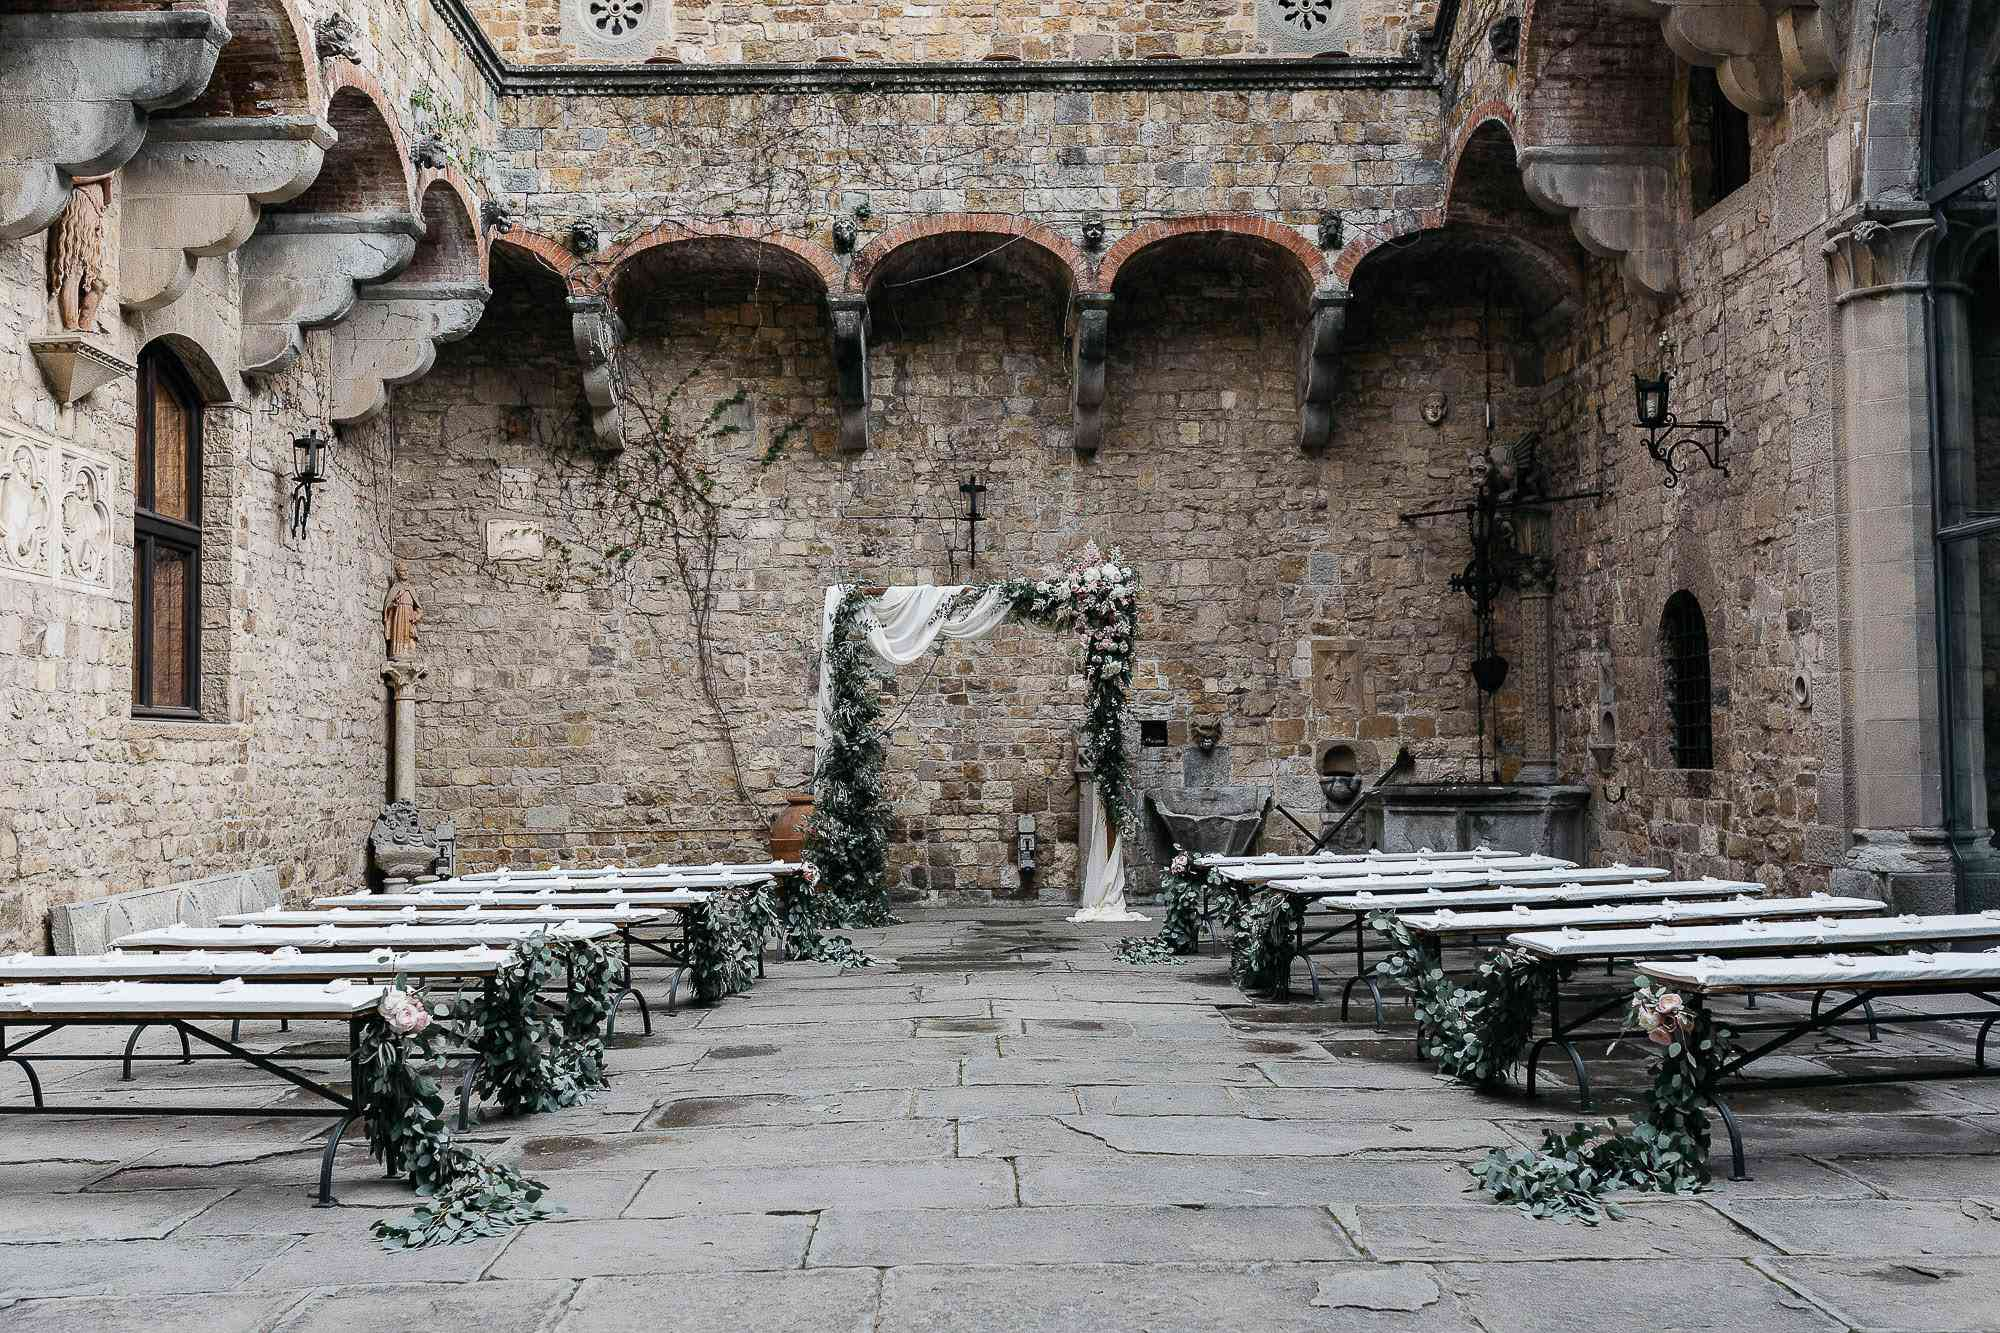 Wedding ceremony in a castle courtyard